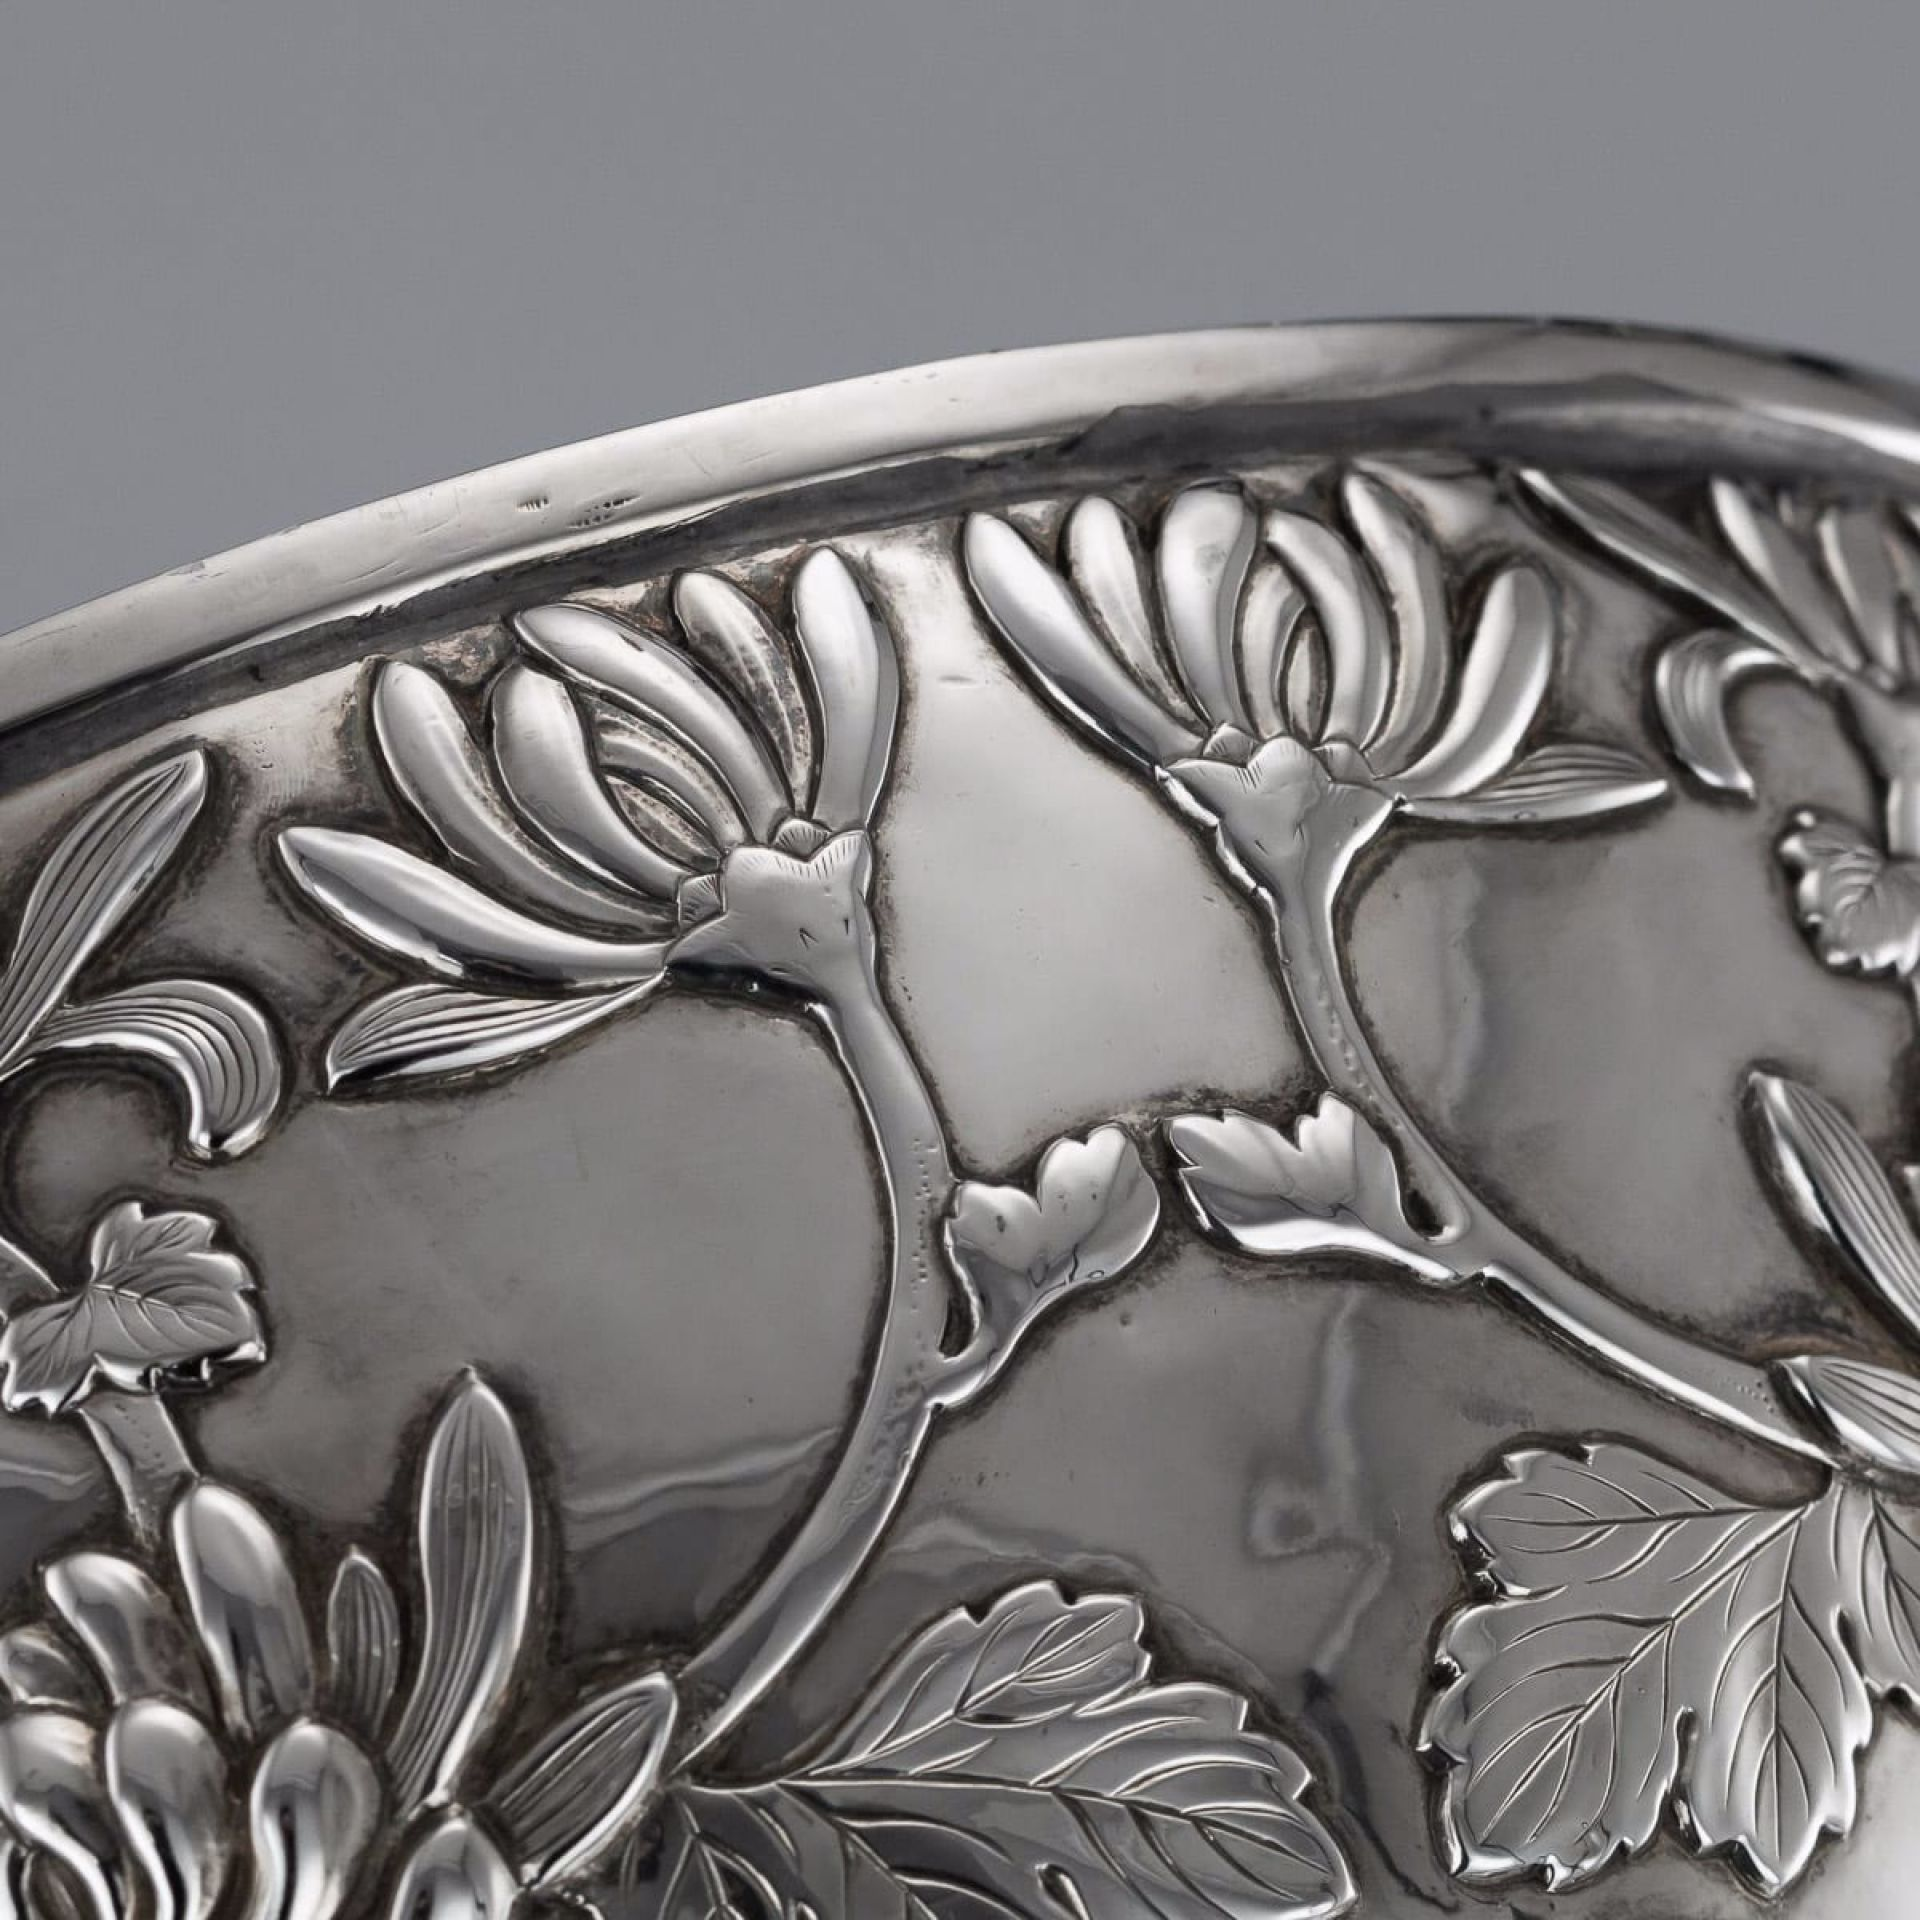 ANTIQUE 20thC JAPANESE MEIJI PERIOD SOLID SILVER FLORAL BOWL c.1900